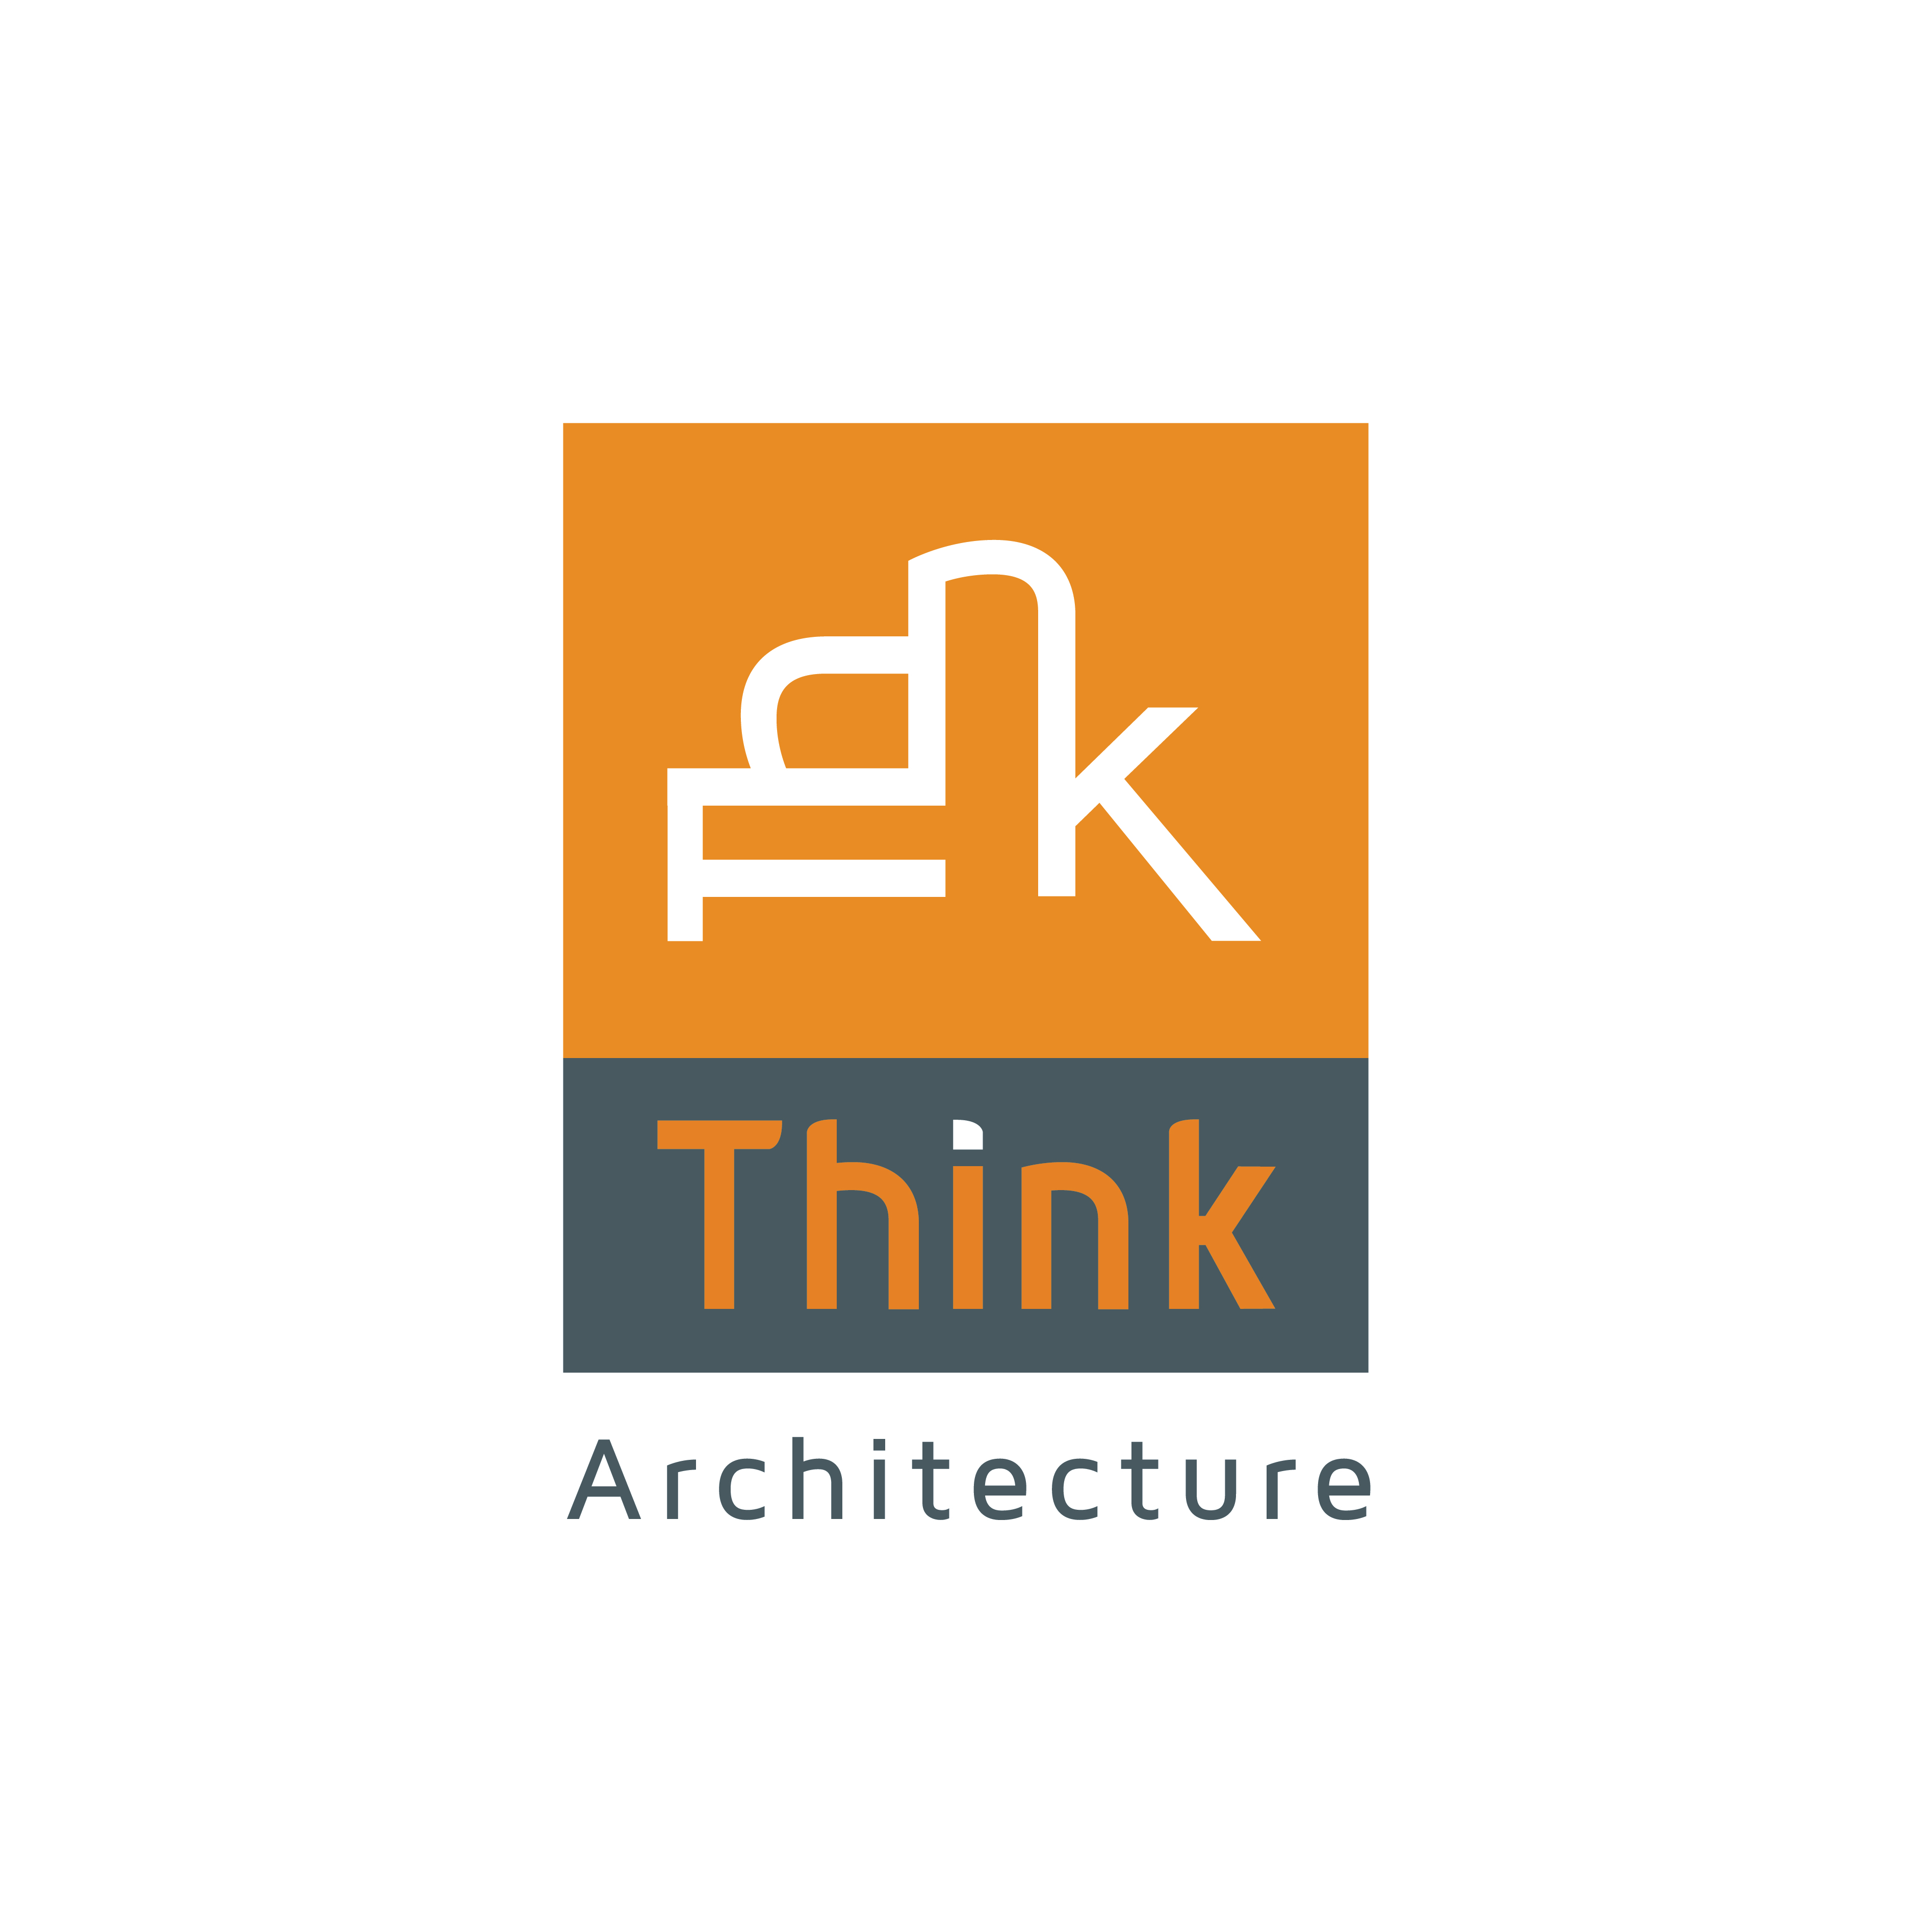 Think architecture inc in salt lake city ut 84117 for Architects corporation